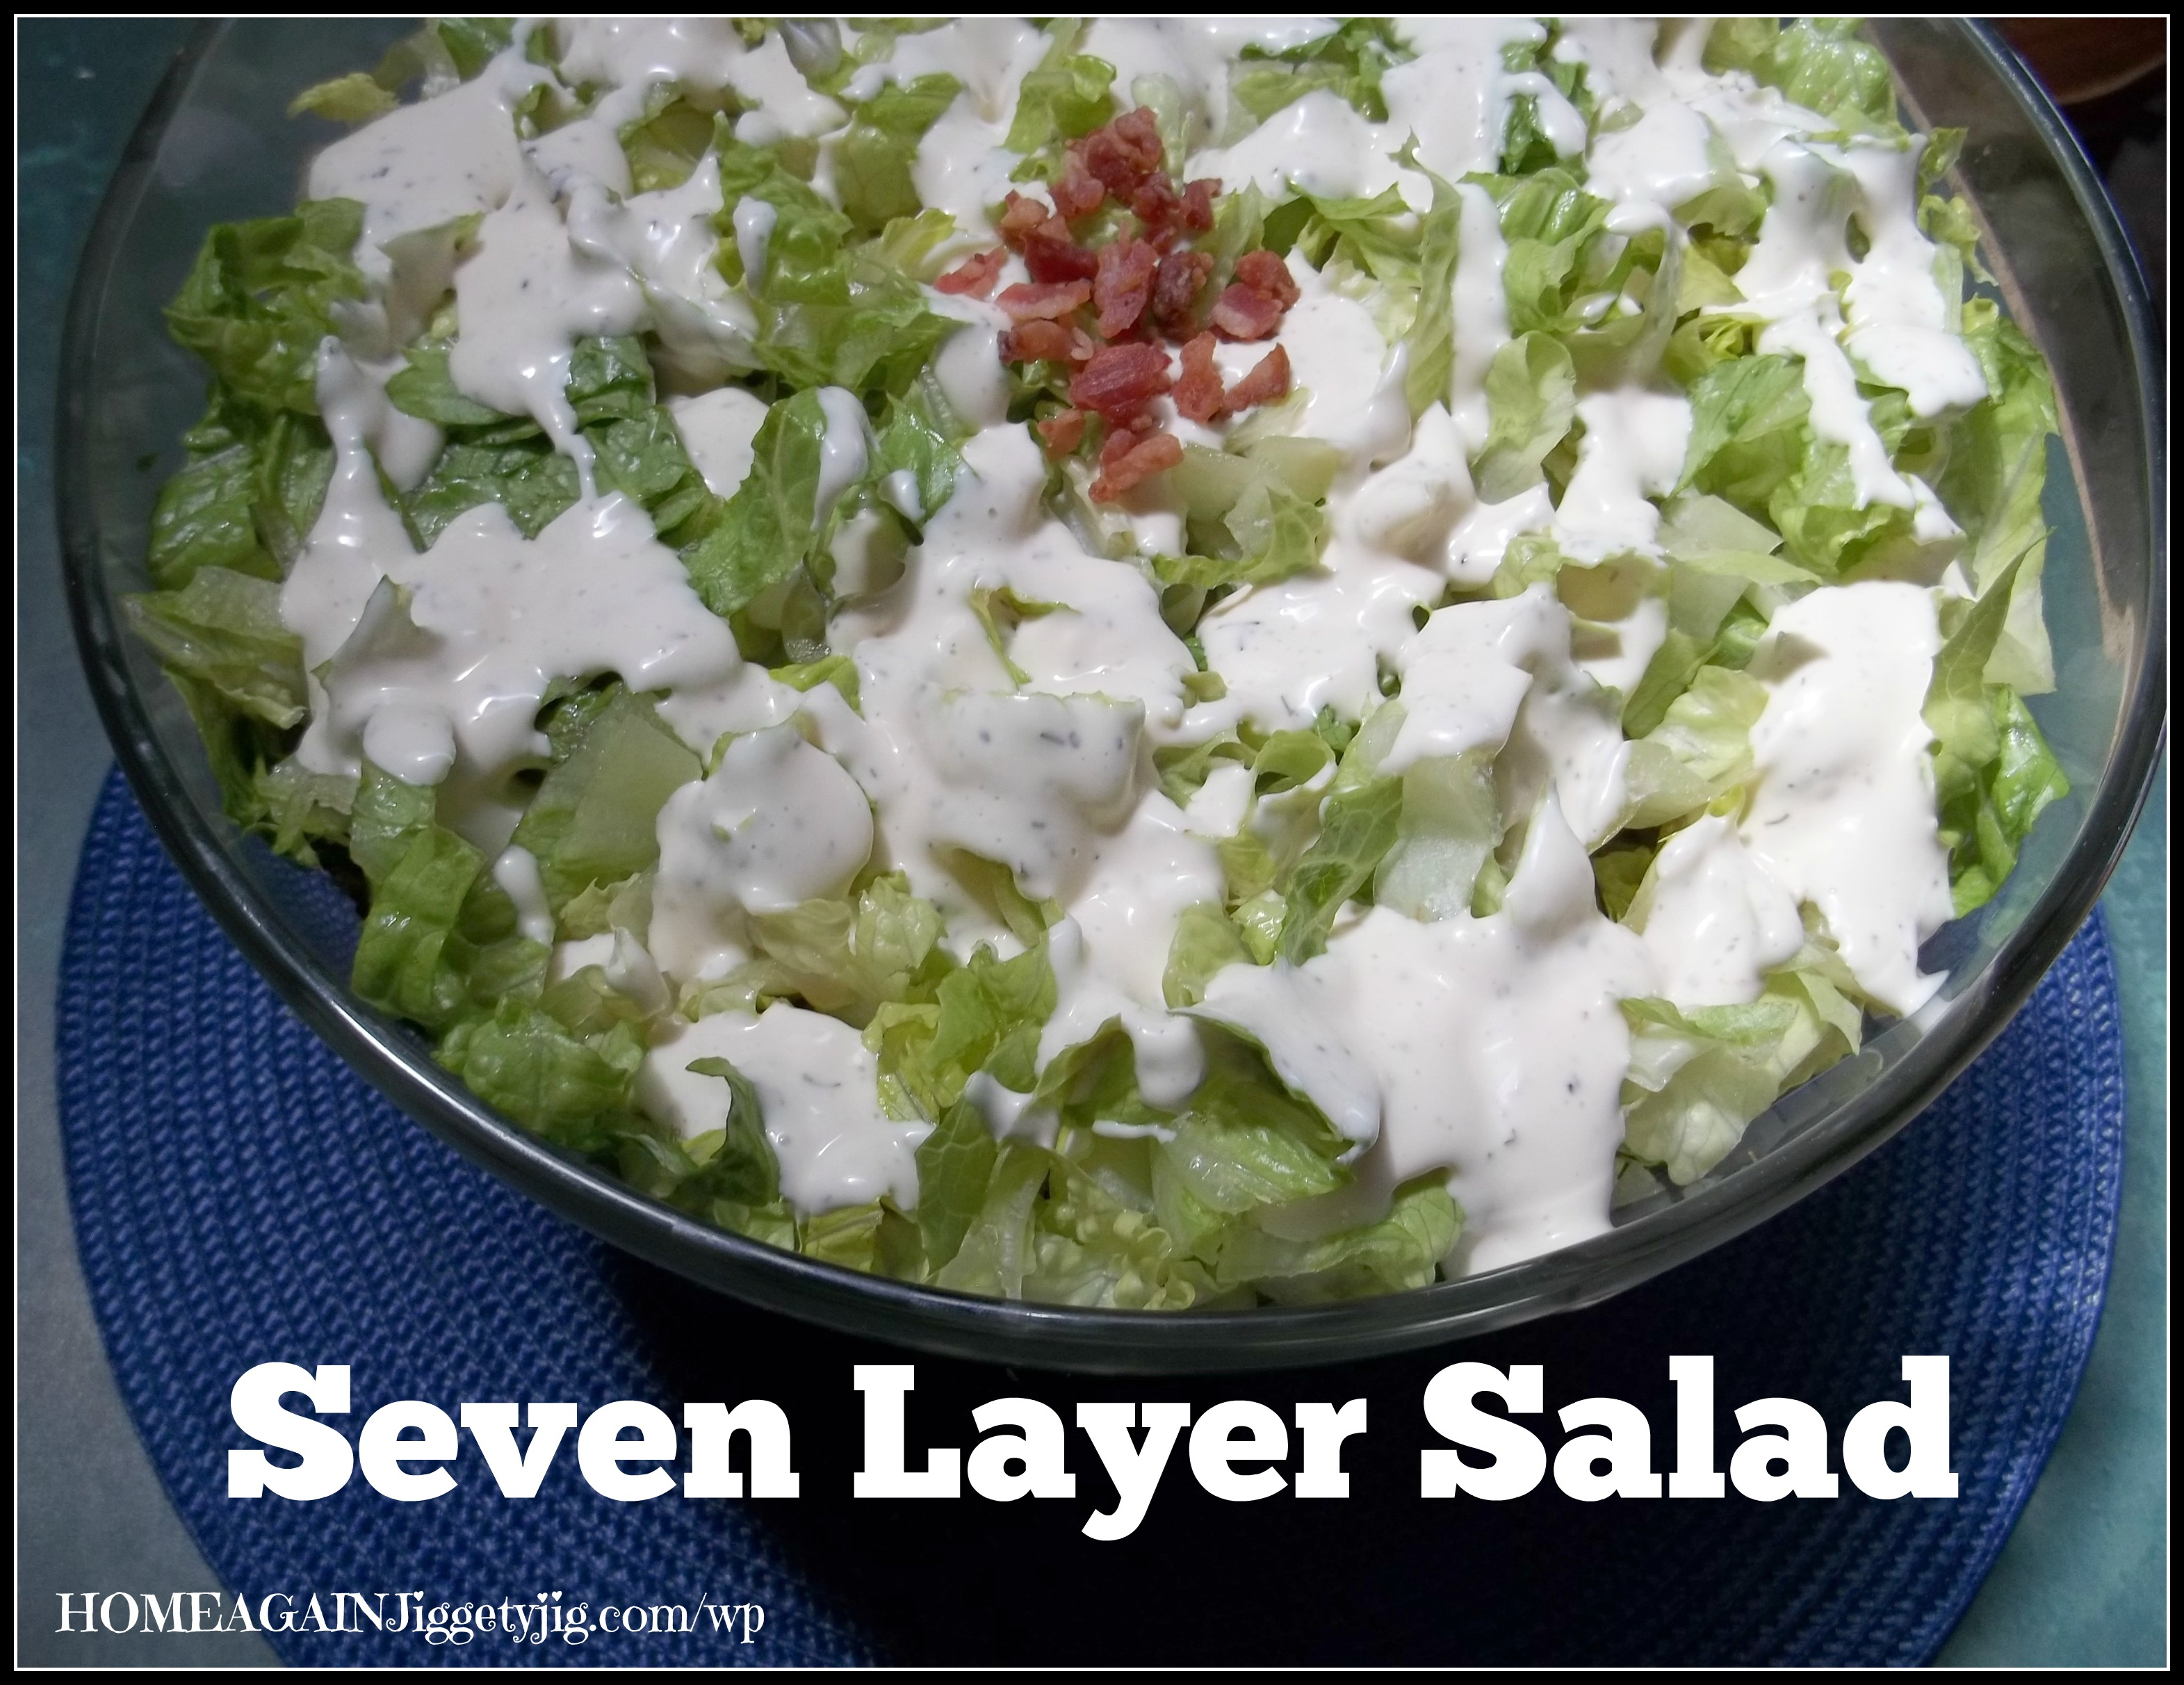 7 Layer Salad Front (with label)